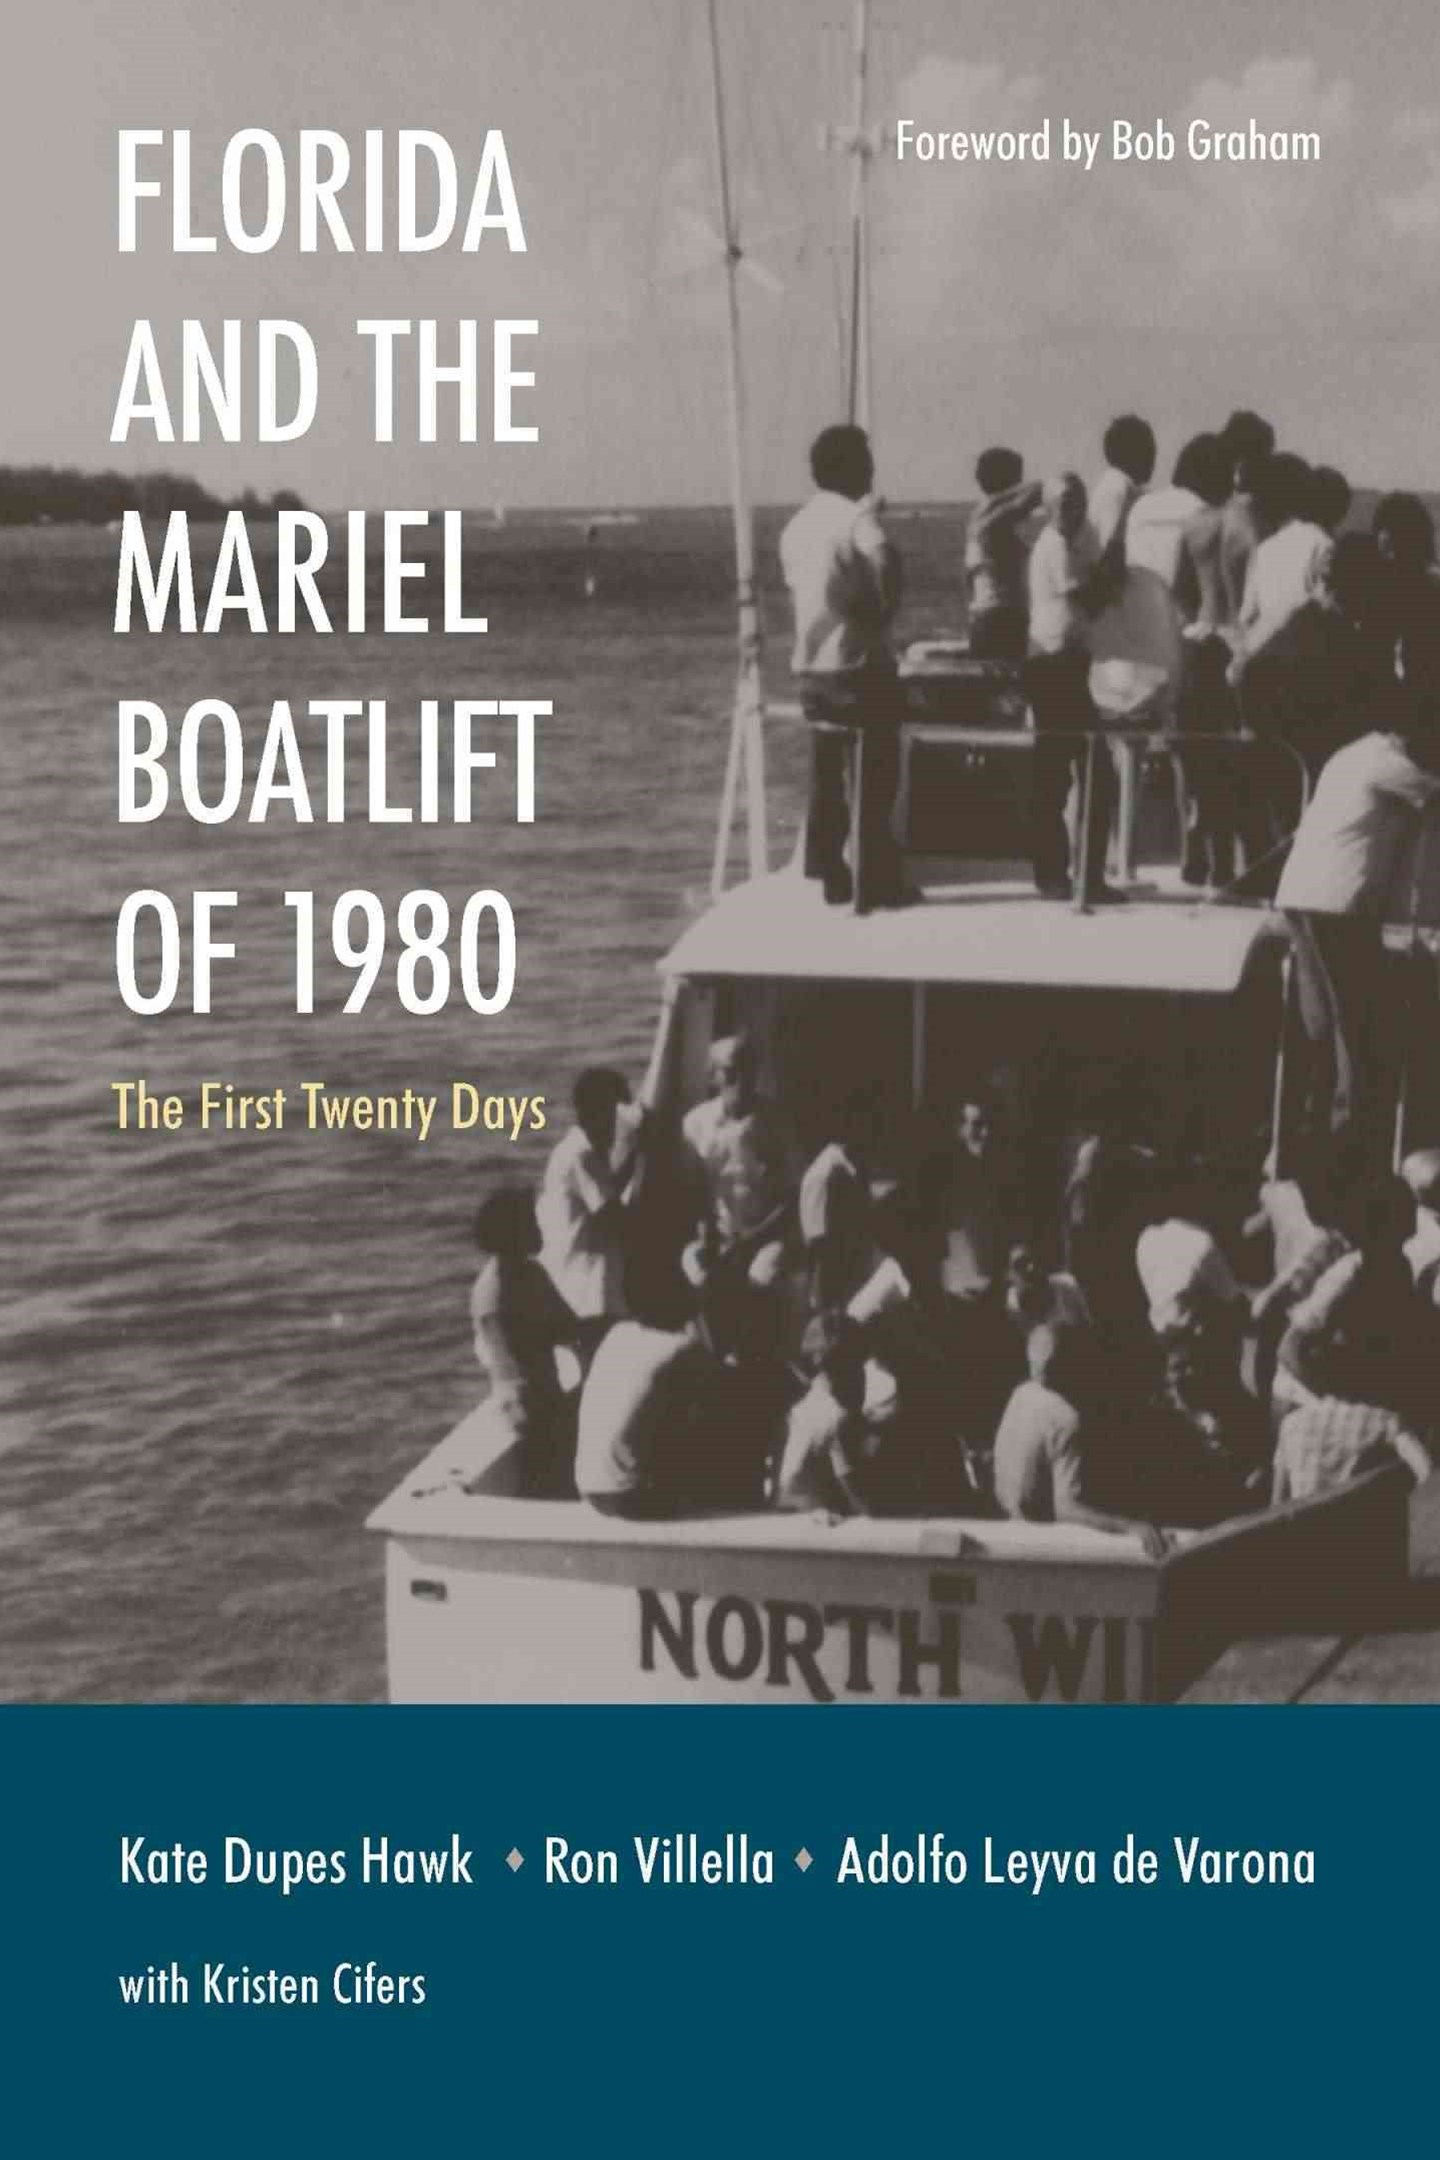 Florida and the Mariel Boatlift of 1980